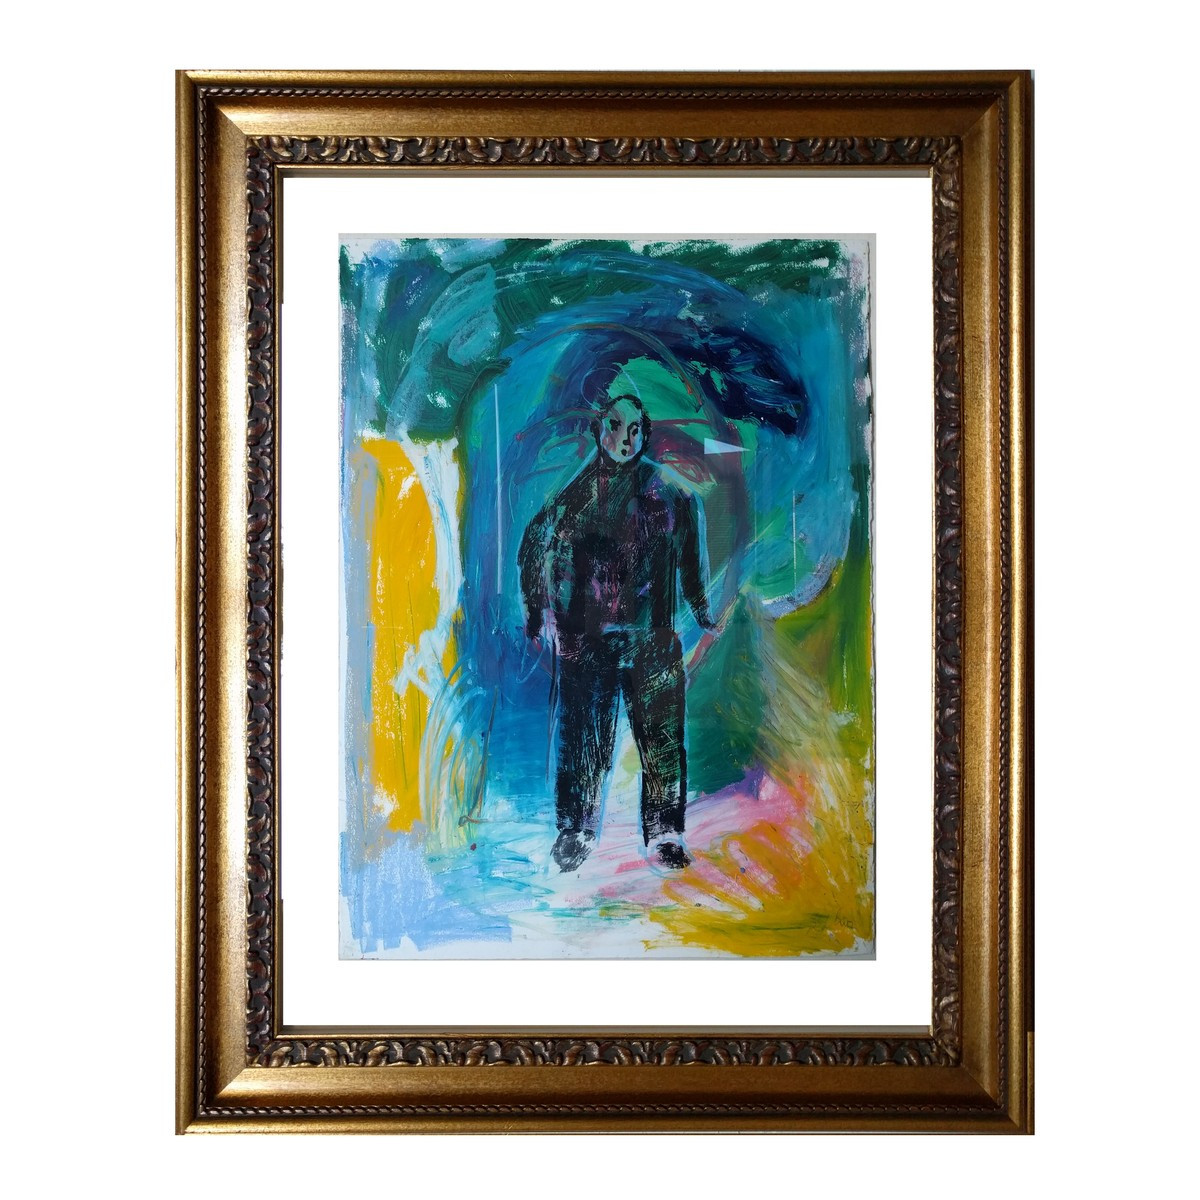 Han Blue Background Gouache on paper 30 x 21 in. 44 x 34 in. framed Handsigned lower right